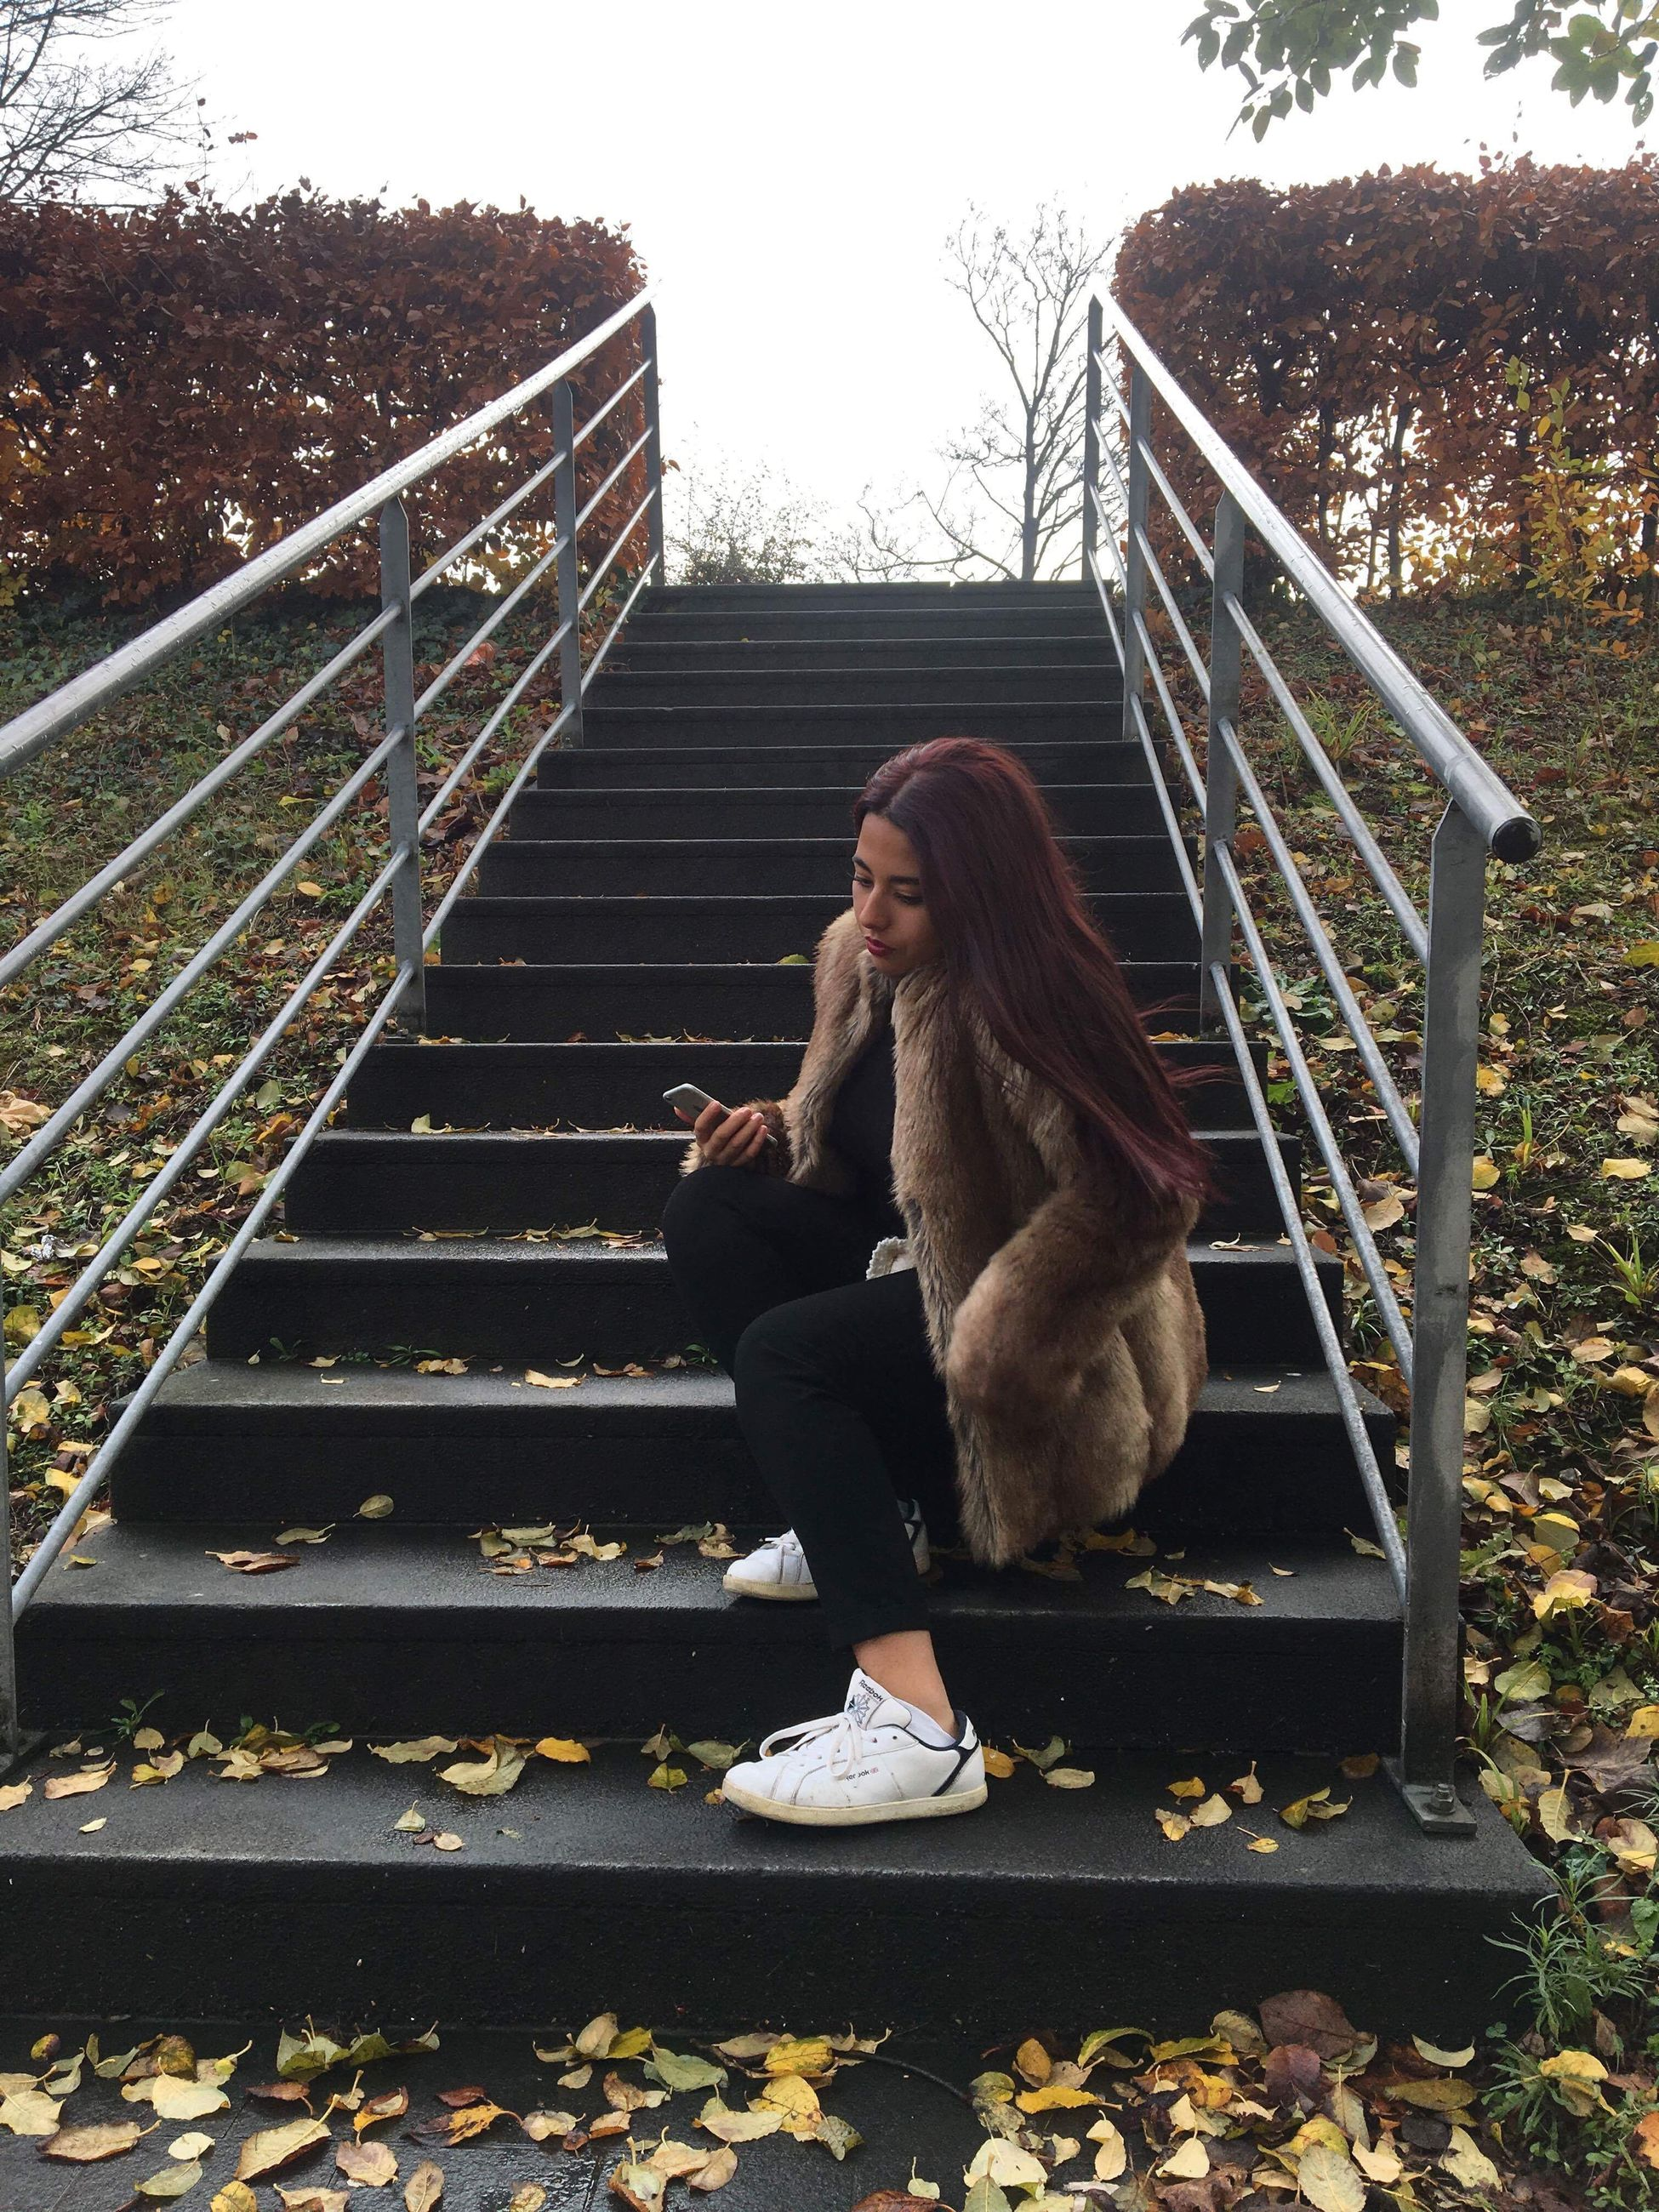 full length, steps, railing, steps and staircases, one person, staircase, real people, young adult, sitting, outdoors, young women, day, nature, people